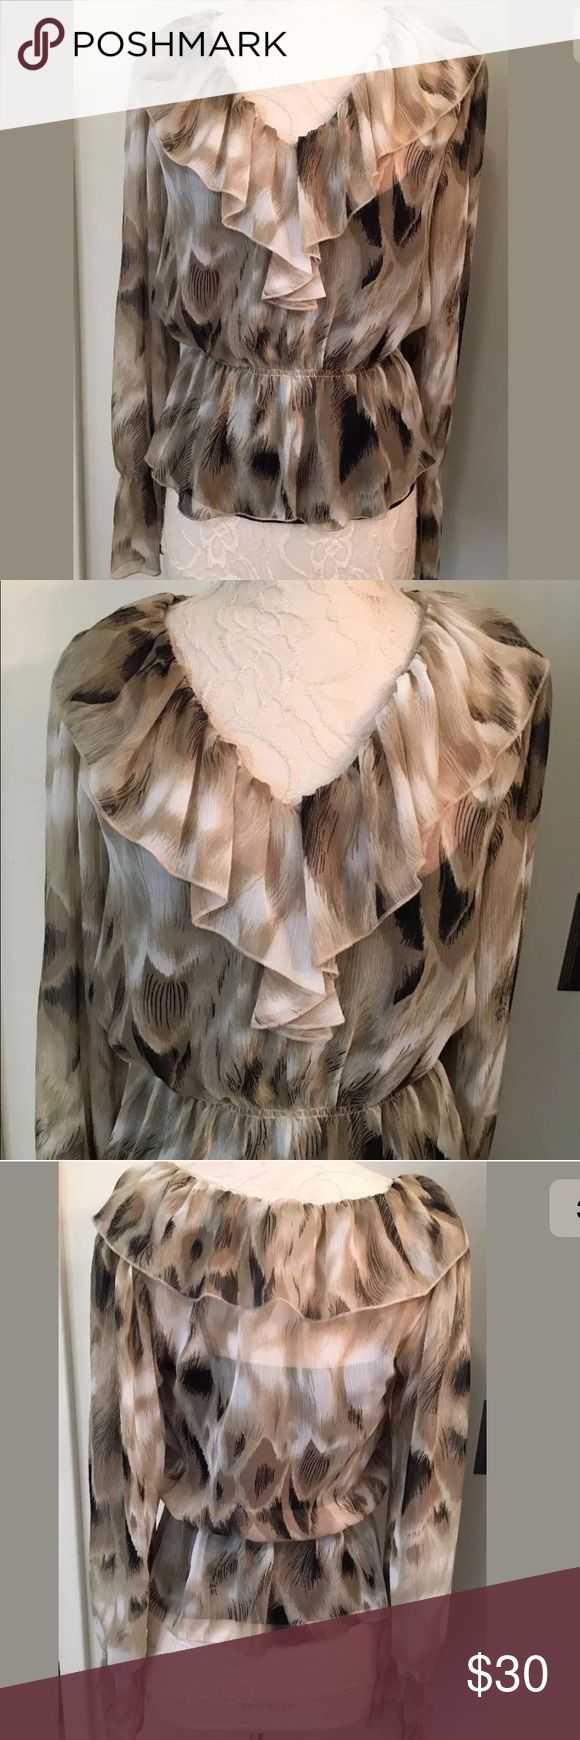 """Robbi Nikki tons of ruffles blouse Robbi & Nikki Size XS New without tags Boutique Price tag ($174) is still attached but Robbi & Nikki one has fallen off Top piece is 100% polyester chiffon Ruffles adorn it Underneath is an acetate cami Gorgeous   Measurements (flat/unstretched) Under arms across the back 18.5 at waist 22"""" stretches to 34"""" Shoulder to hem down back 22"""" robbi nikki Tops Blouses"""